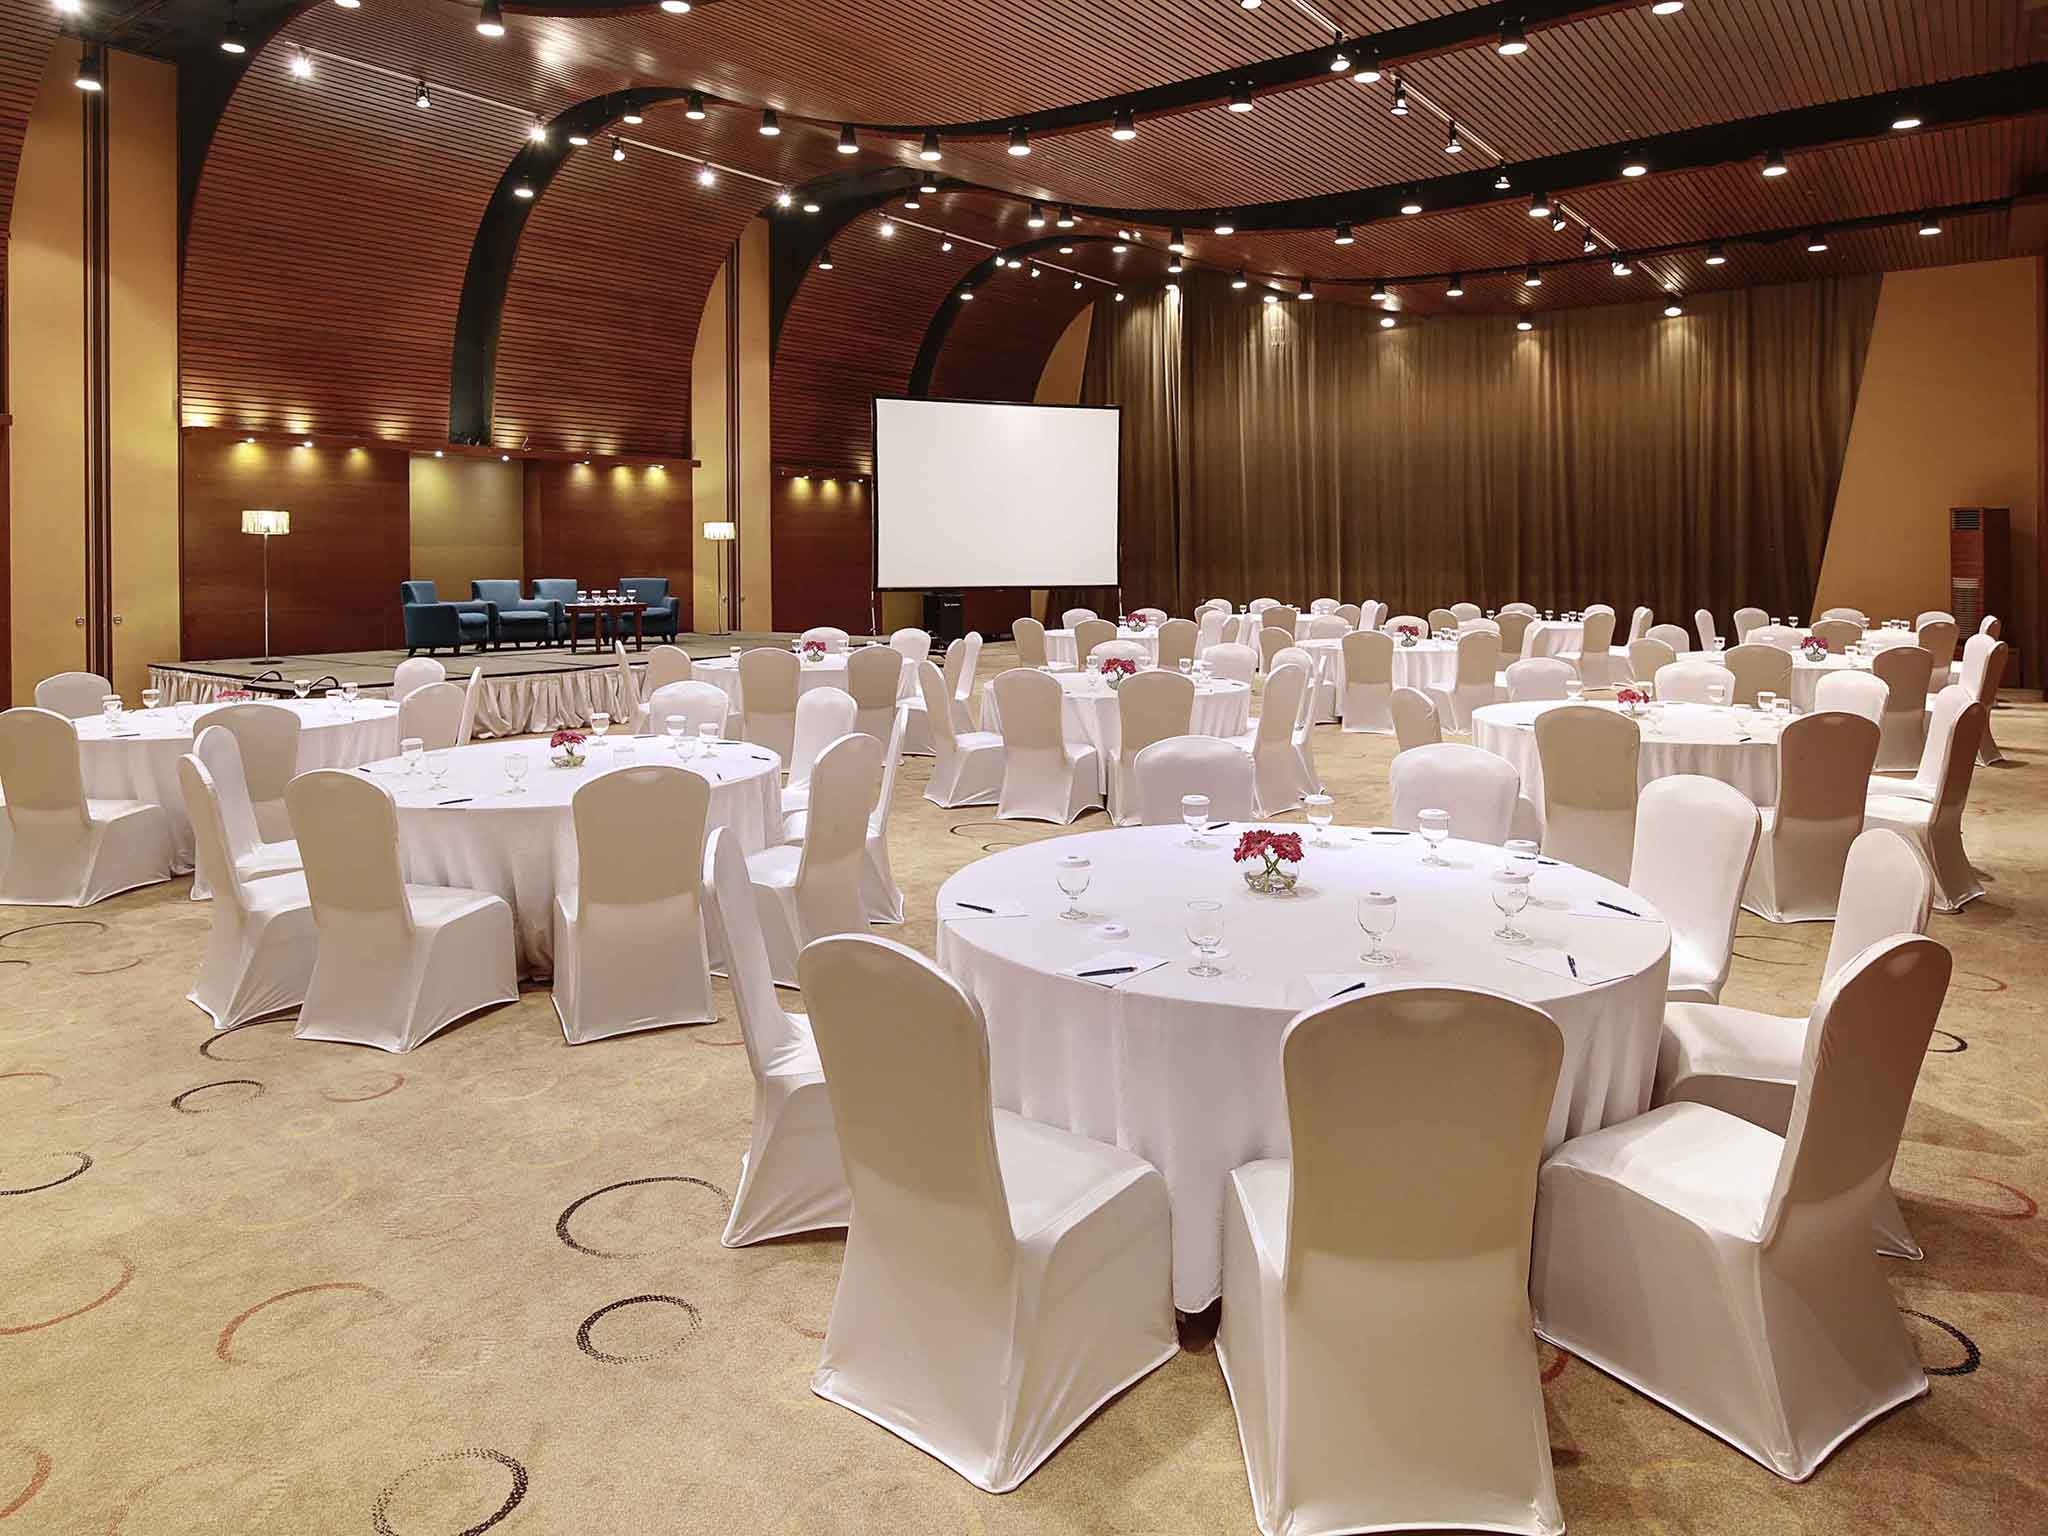 Novotel bandung 4 star international hotel in bandung meetings and events novotel bandung junglespirit Choice Image